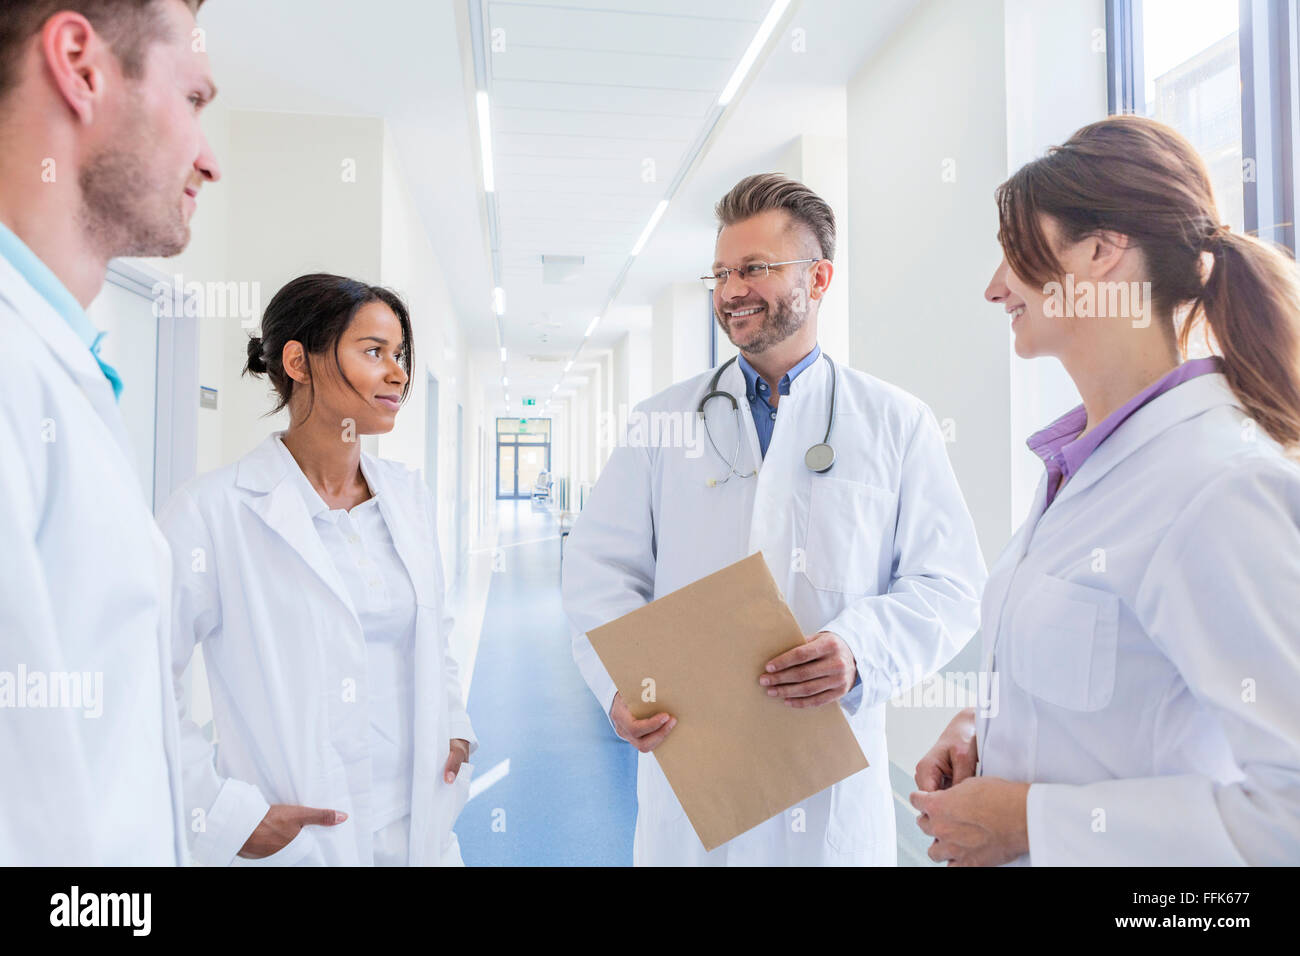 Doctor and coworkers talking in hospital corridor - Stock Image